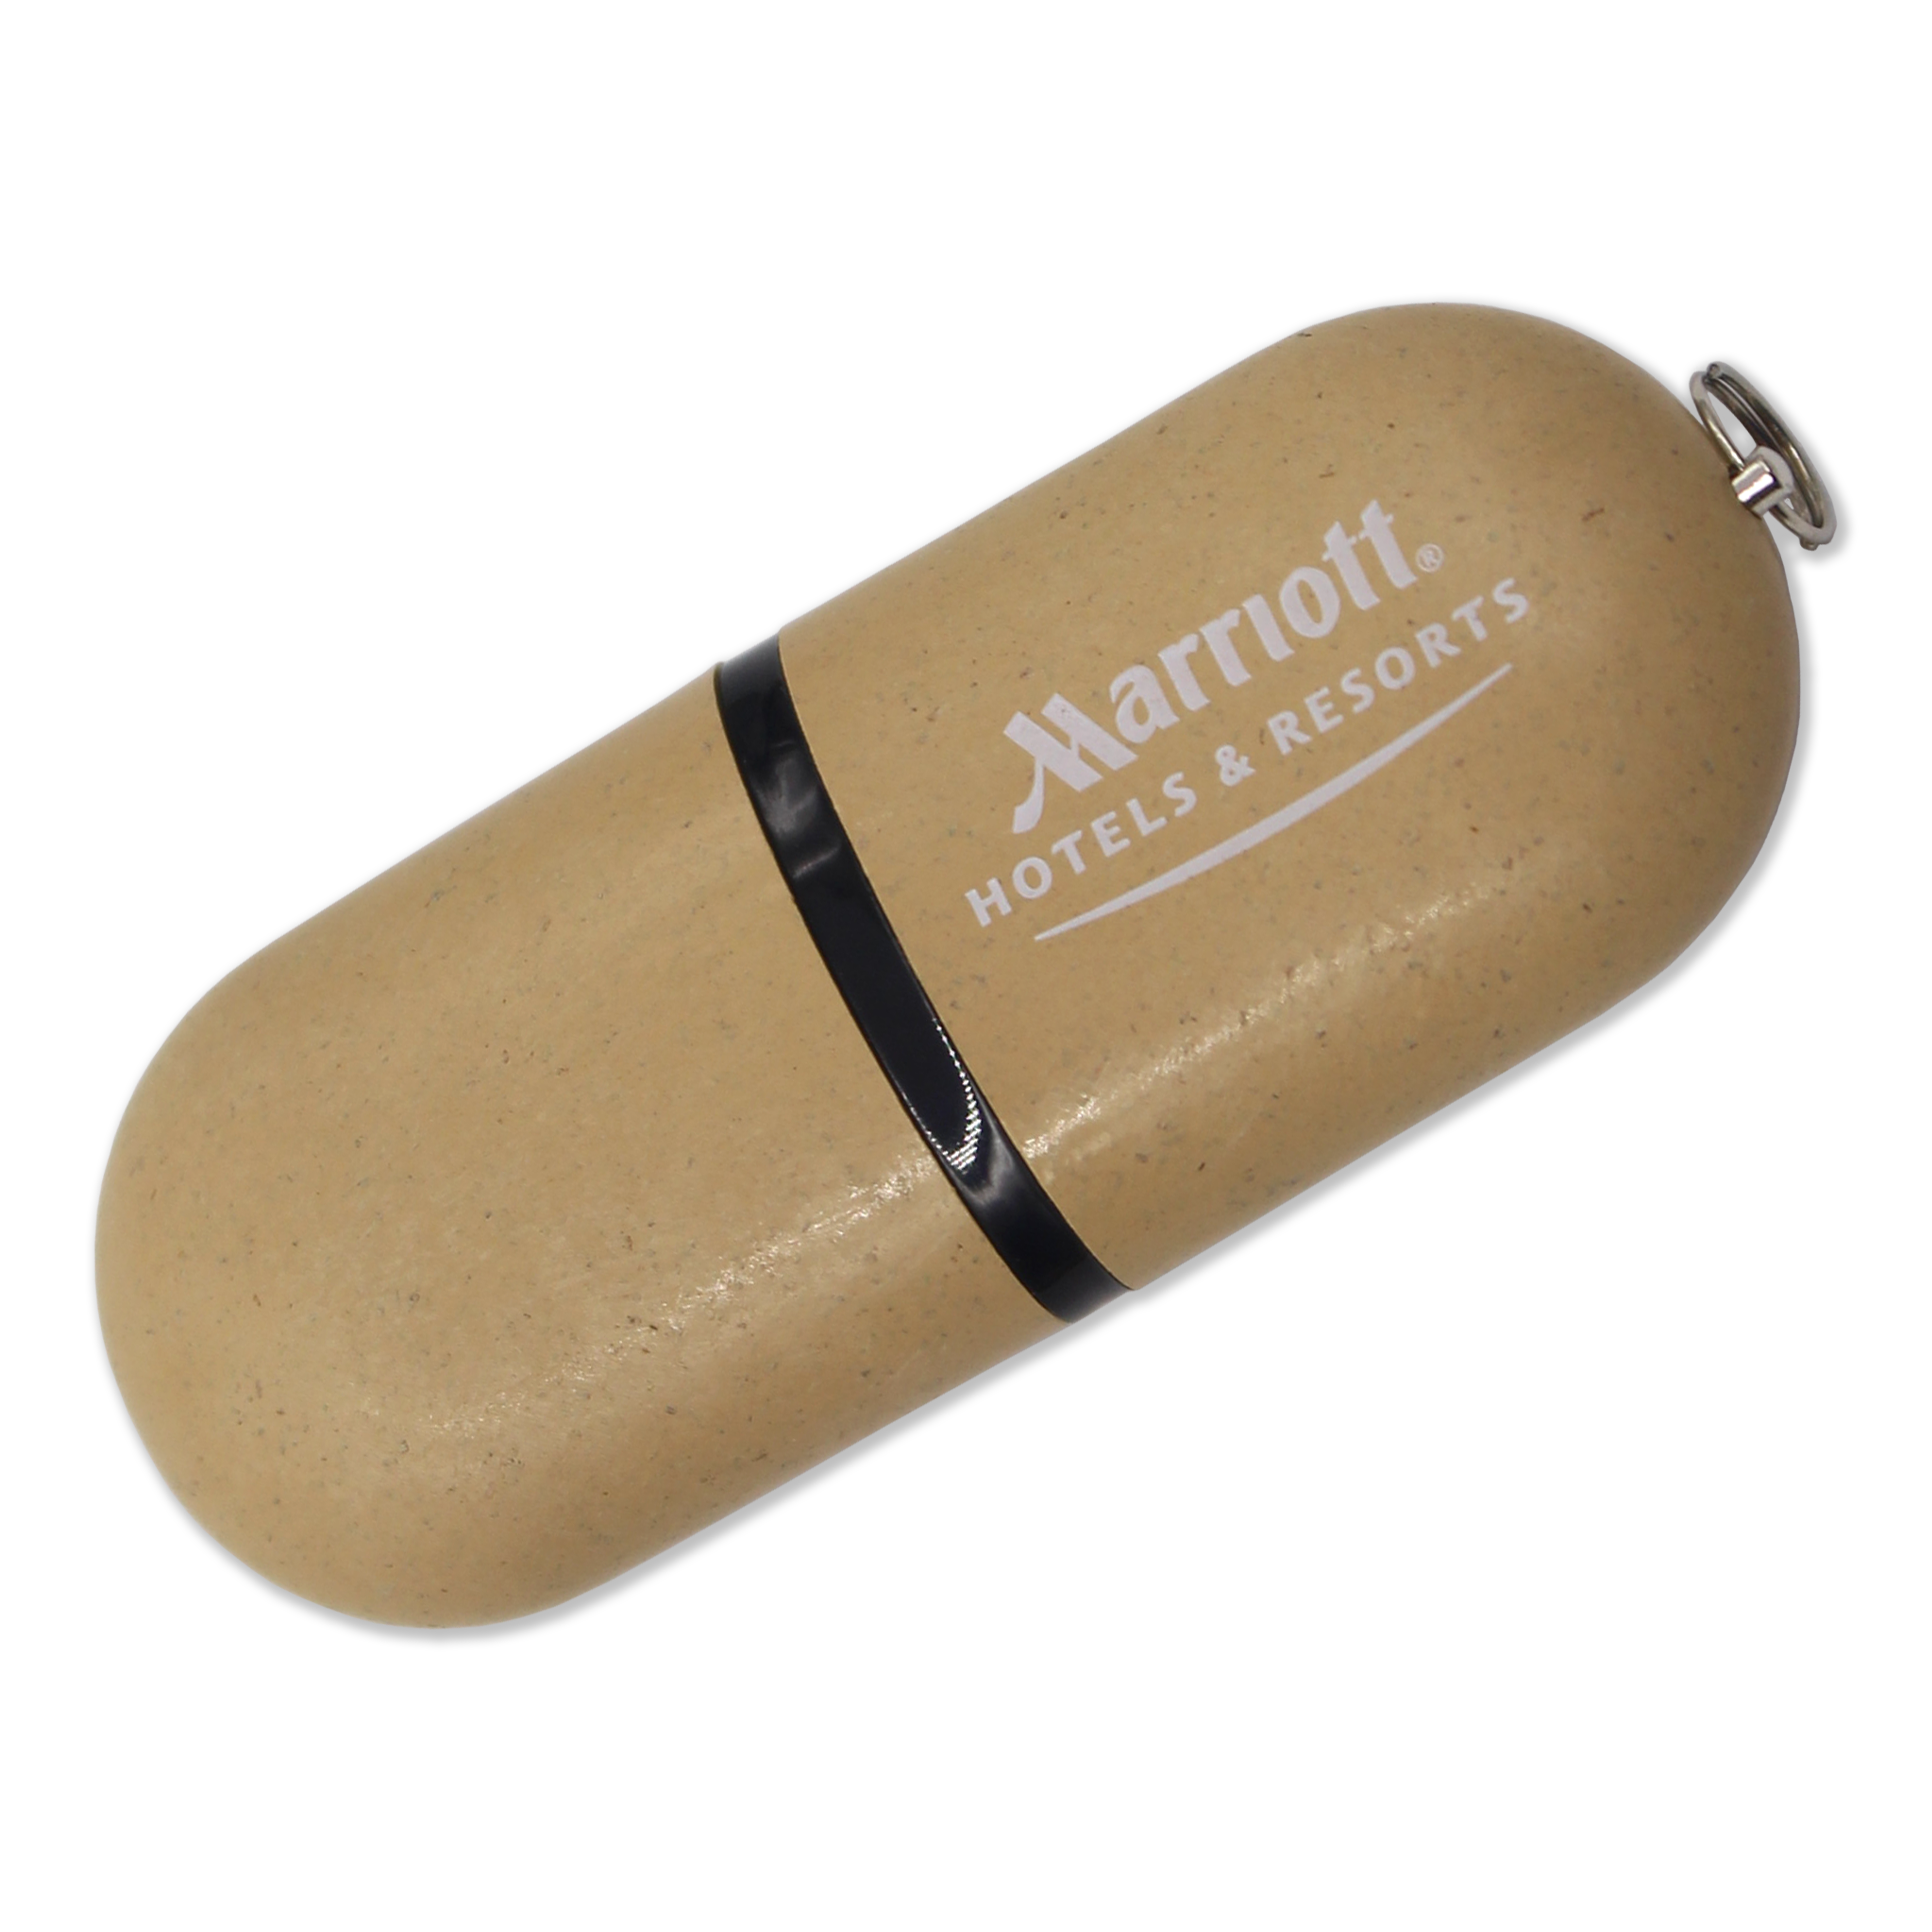 Eco Smooth Capsule